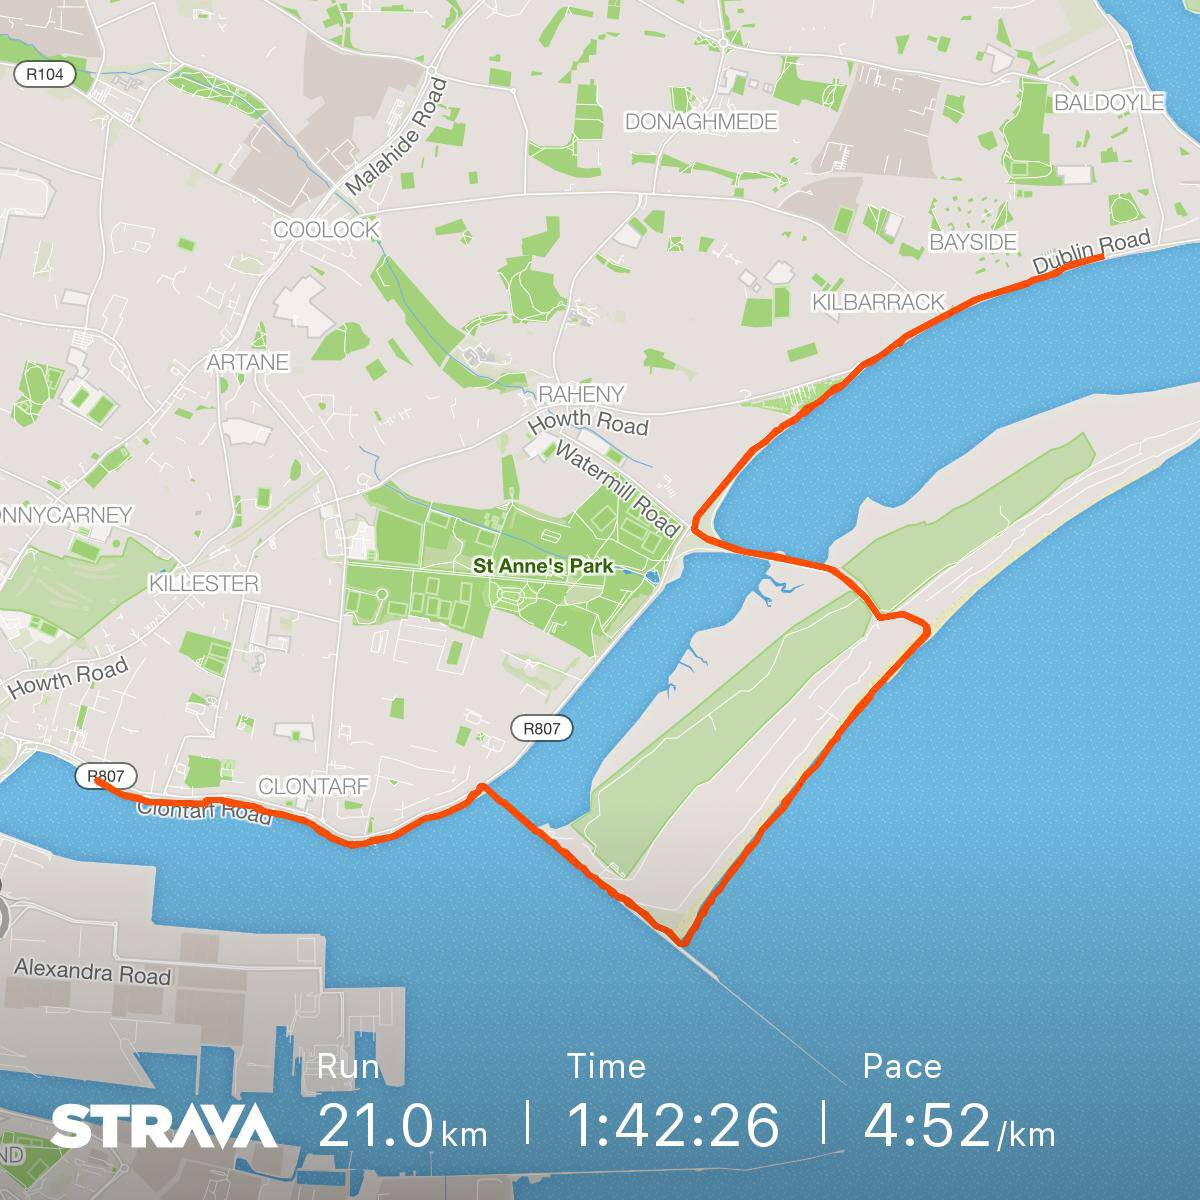 Run route on Strava